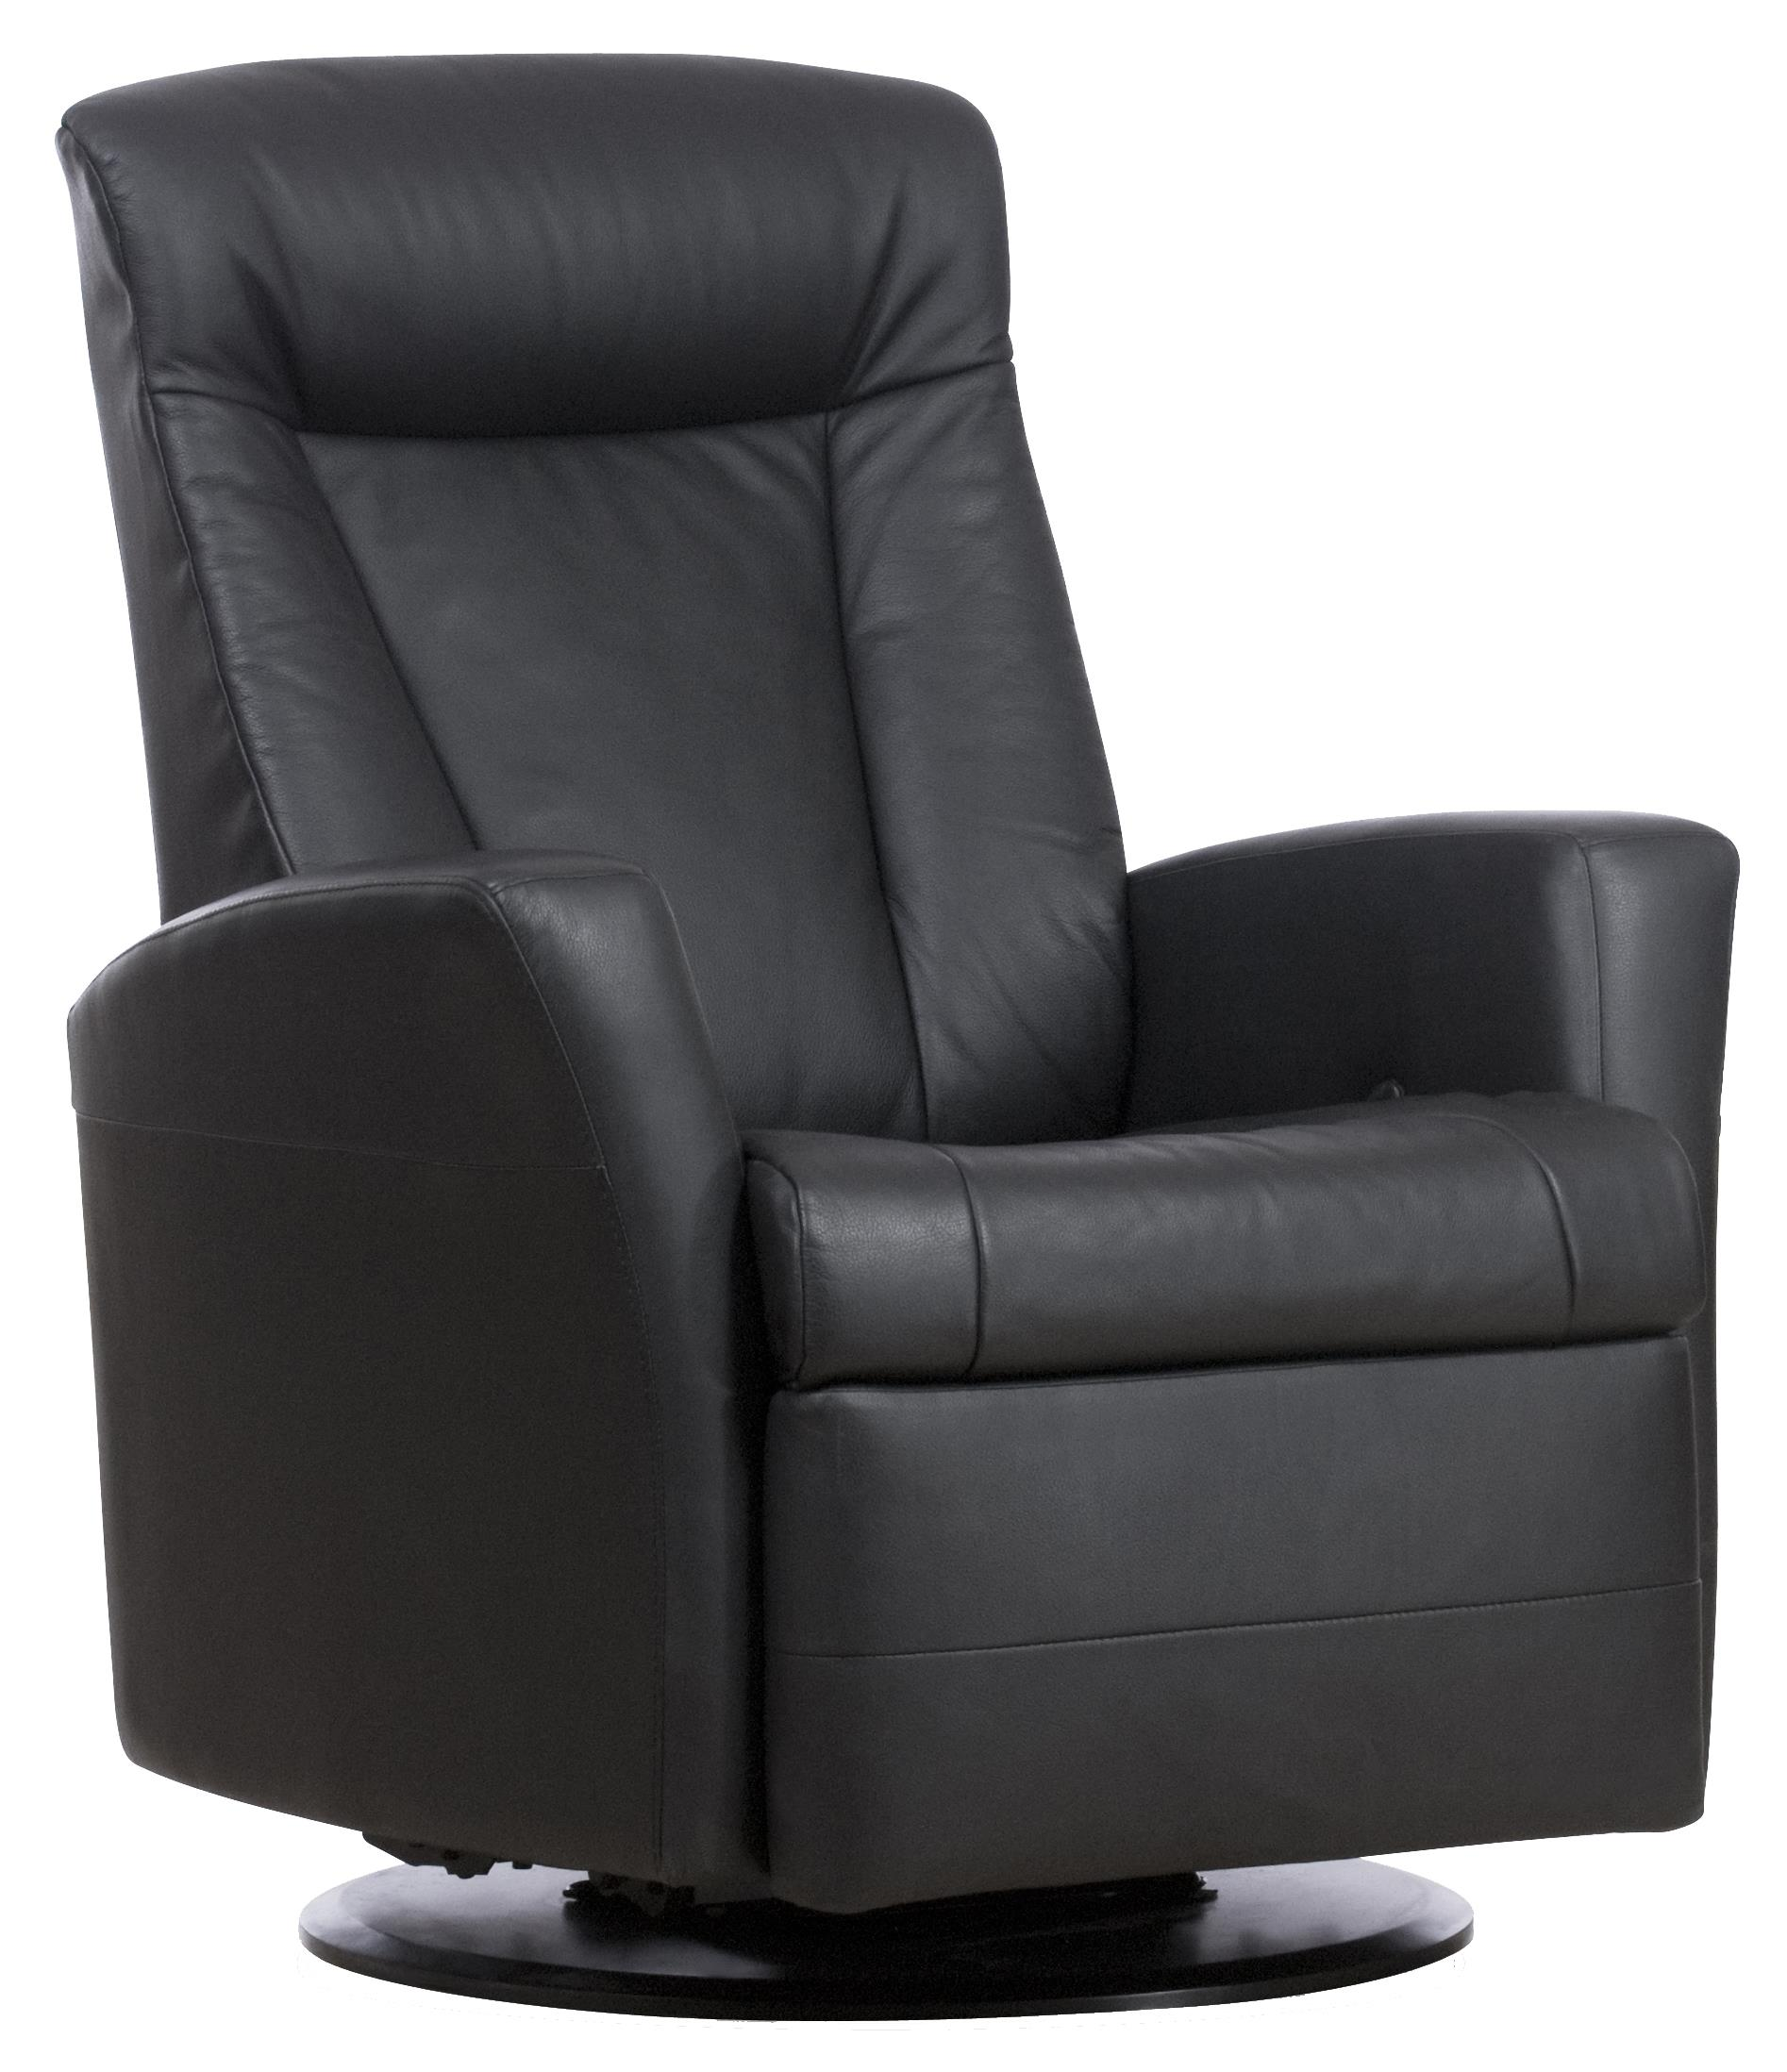 Prince Relaxer Recliner